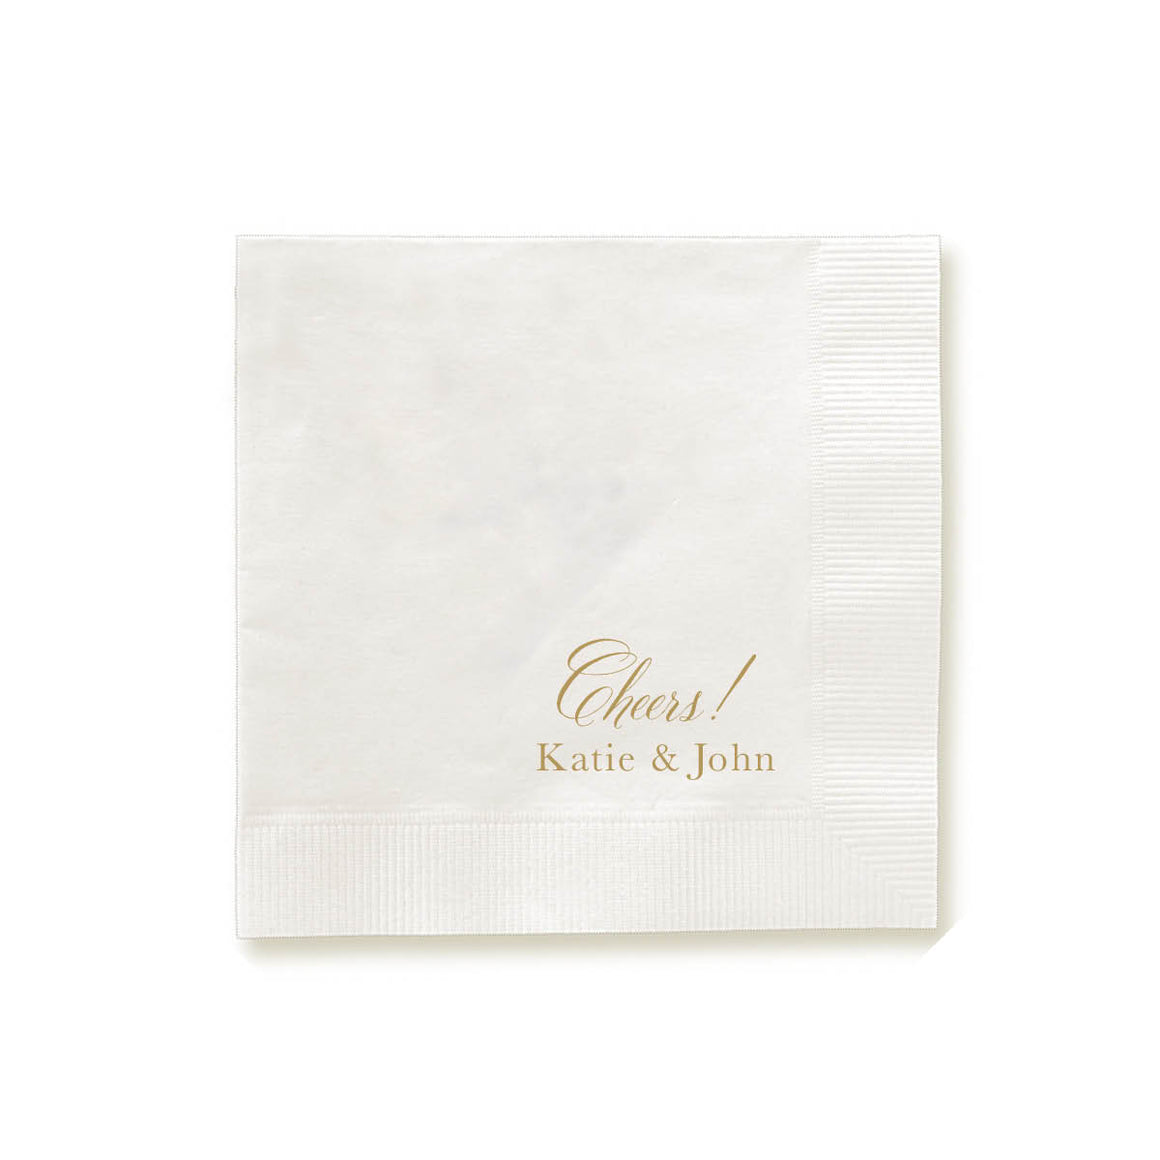 Cheers!  Personalized Foil Pressed Napkins